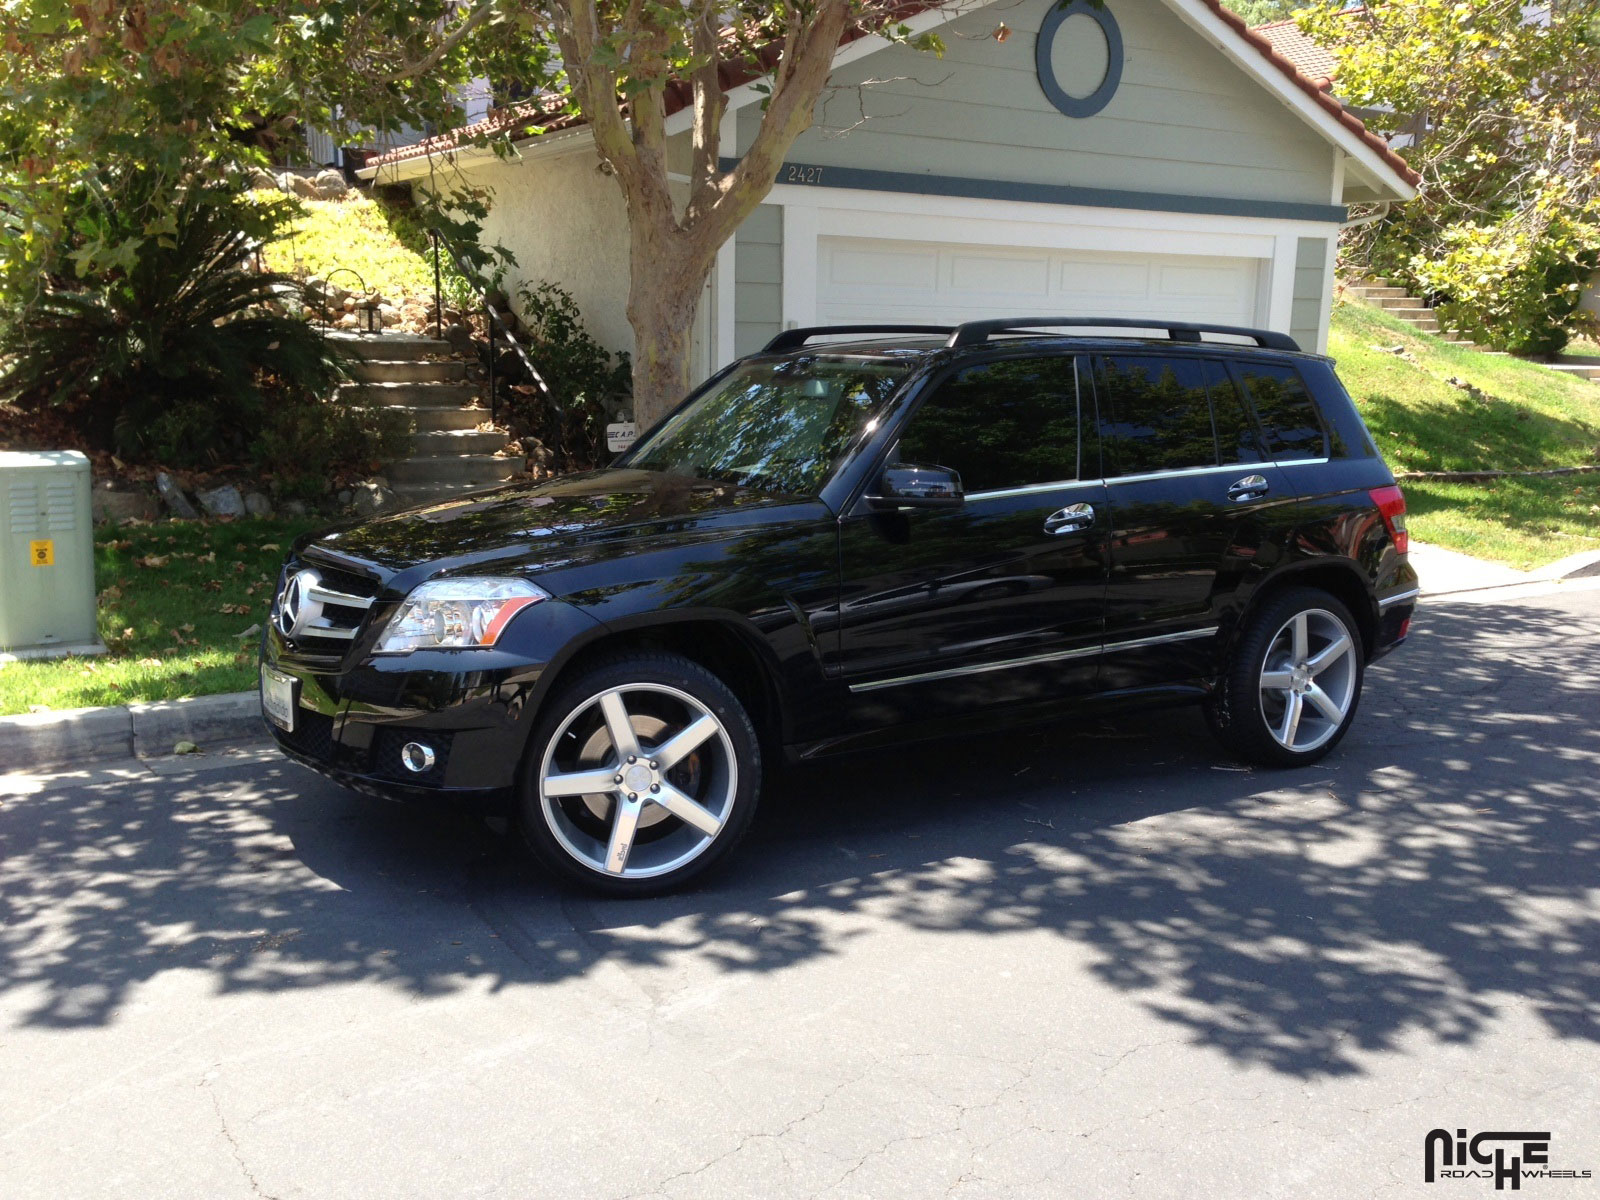 Mercedes benz glk350 milan m135 gallery mht wheels inc for Mercedes benz wheel